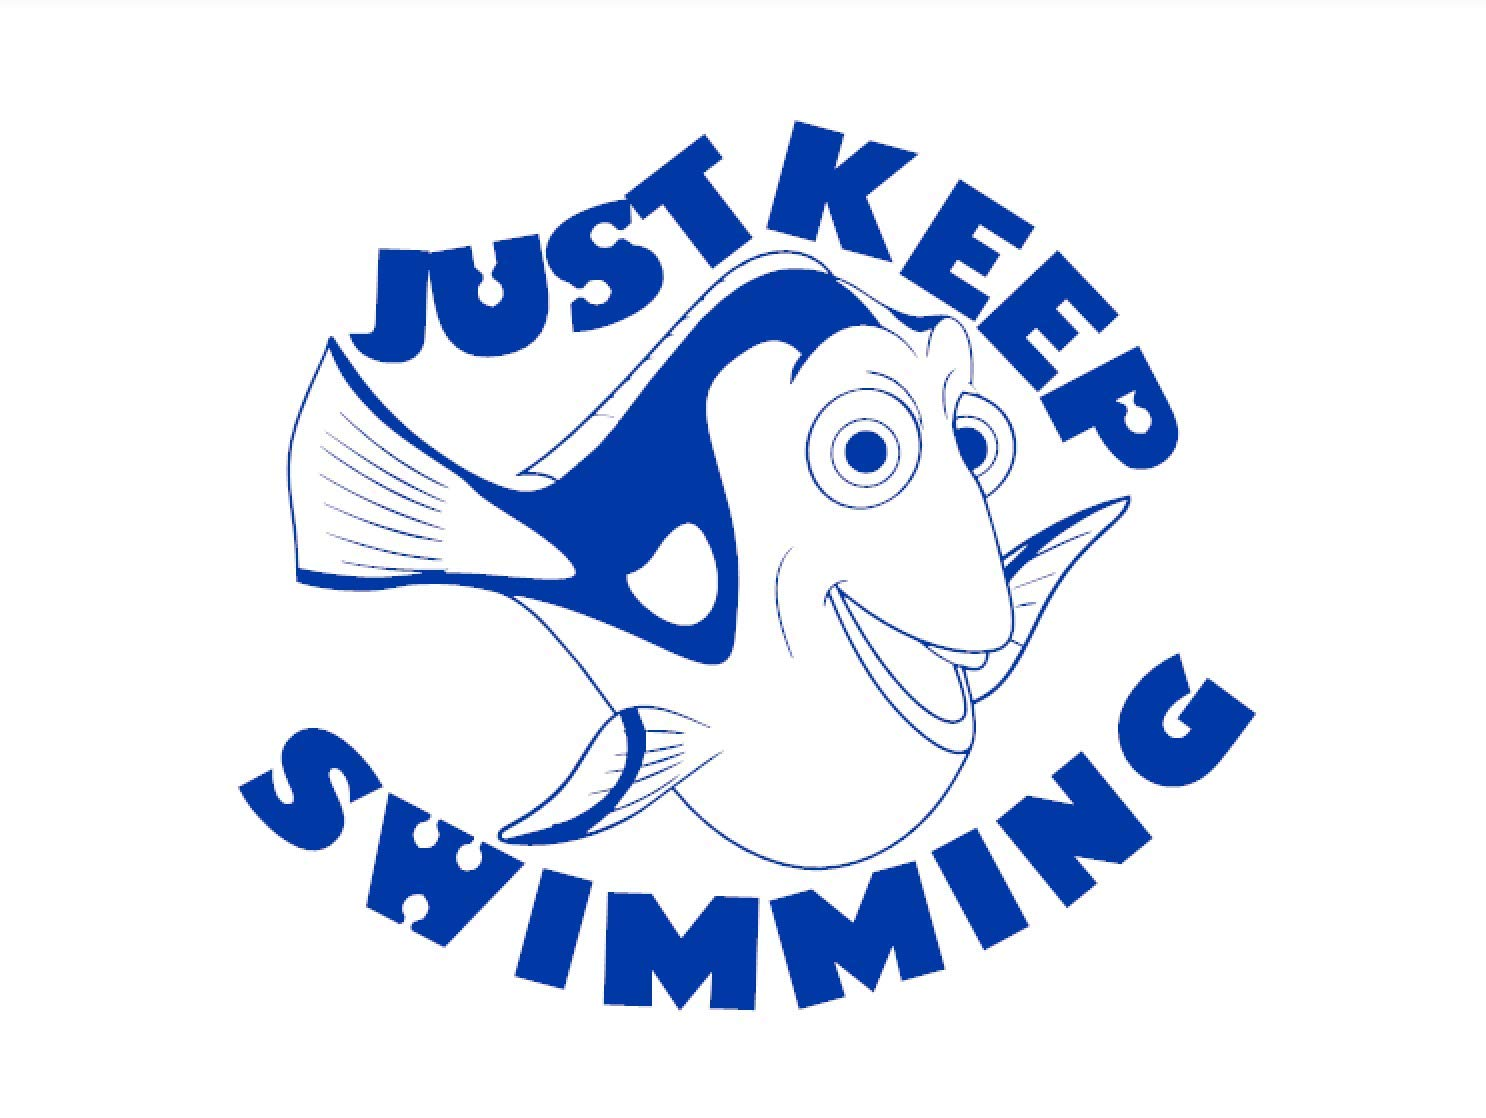 Just keep swimming clipart graphic freeuse stock Amazon.com: Dory - Just Keep Swimming - Nemo - Finding Nemo ... graphic freeuse stock